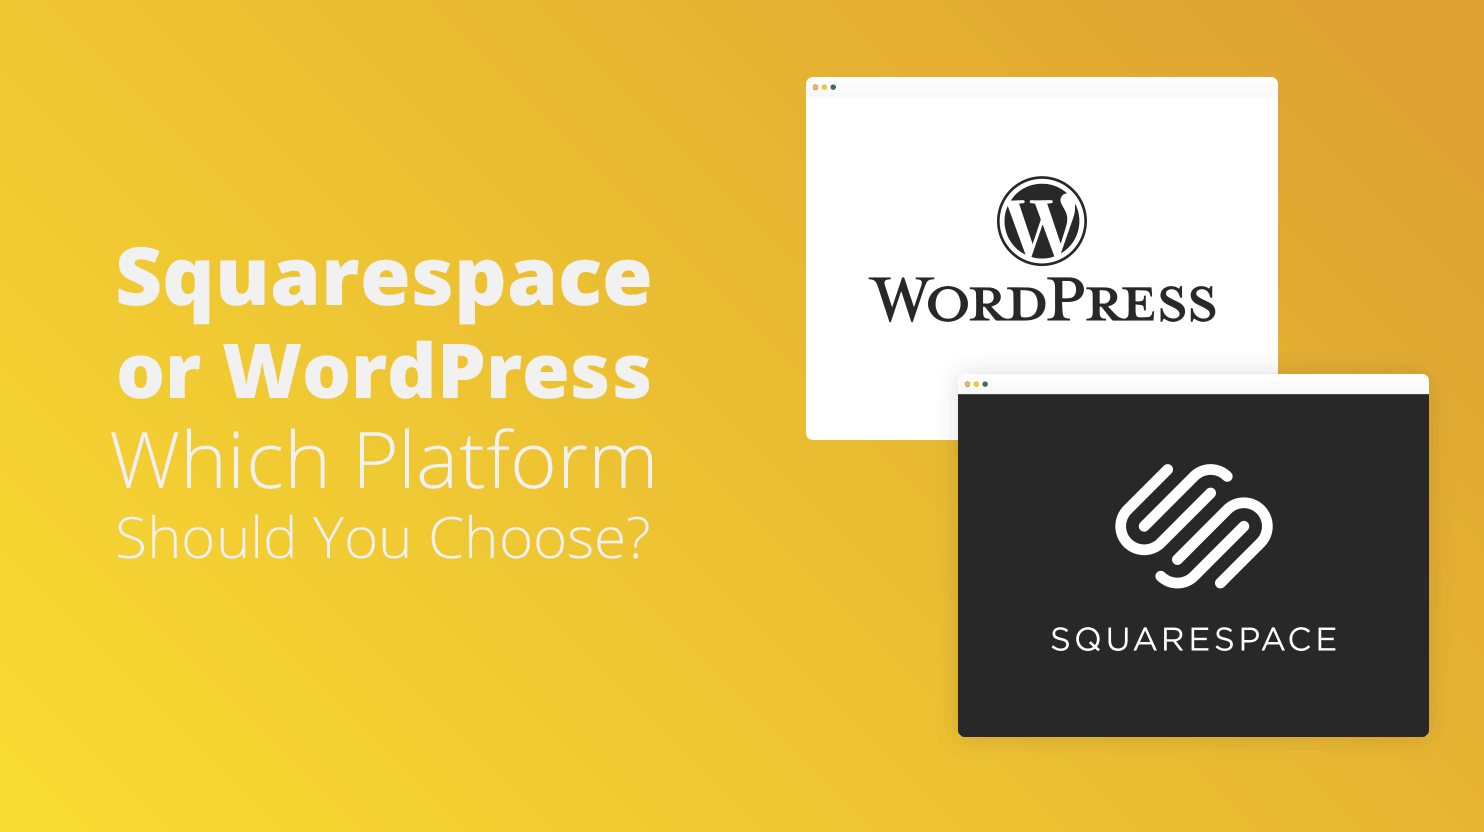 Squarespace-vs-WordPress-Banner